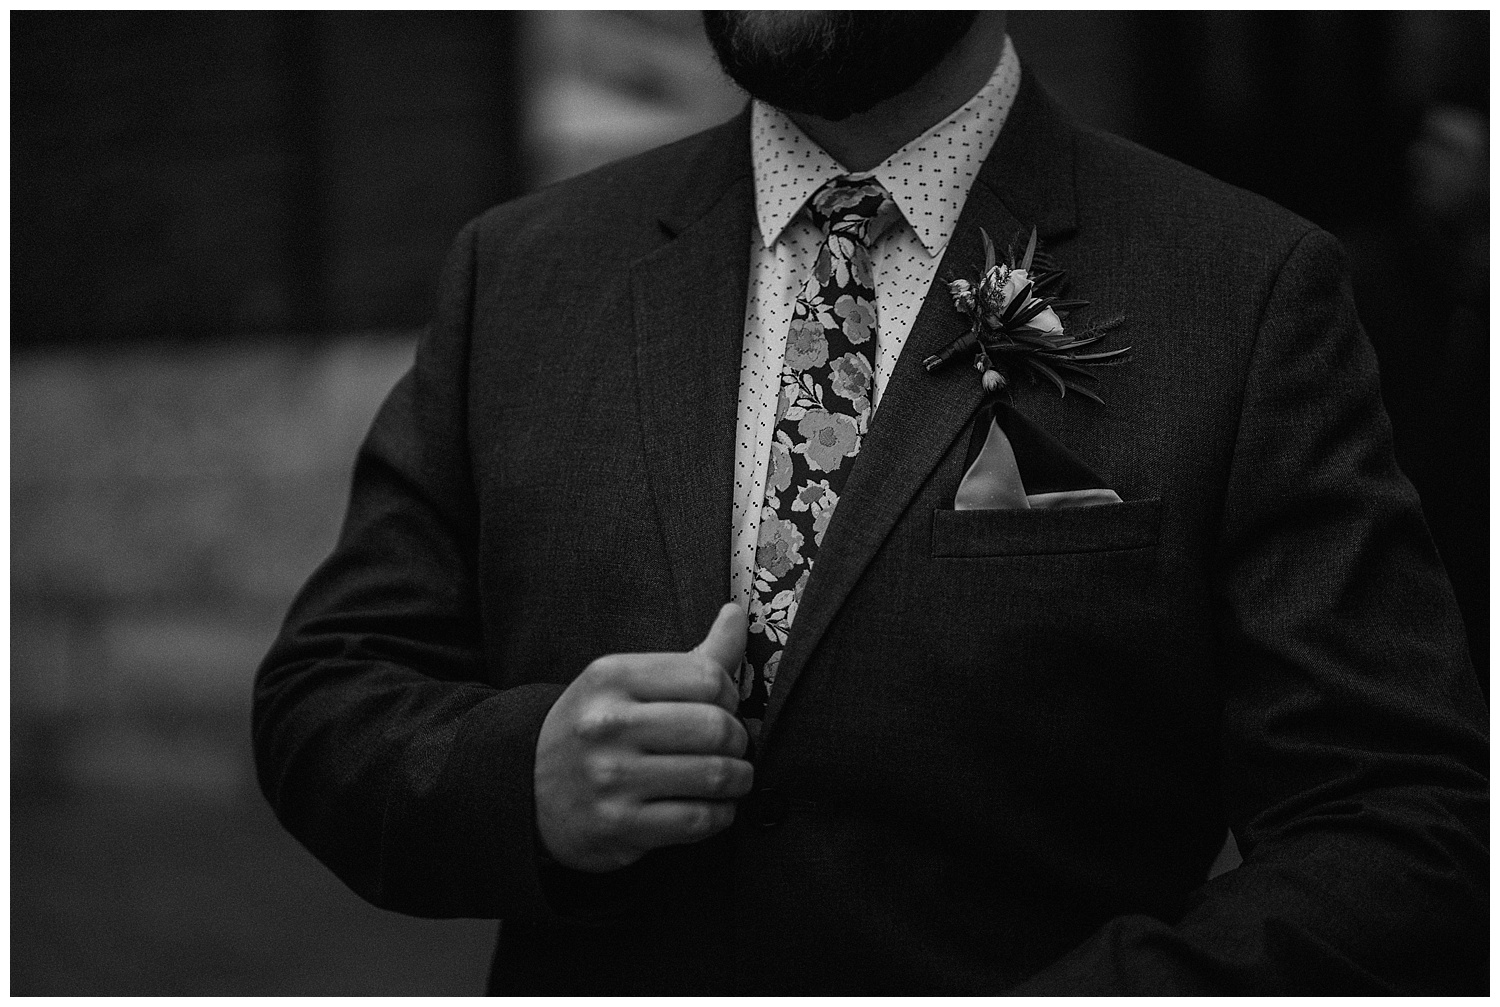 Katie Marie Photography | Archeo Wedding Arta Gallery Wedding | Distillery District Wedding | Toronto Wedding Photographer | Hamilton Toronto Ontario Wedding Photographer |_0023.jpg